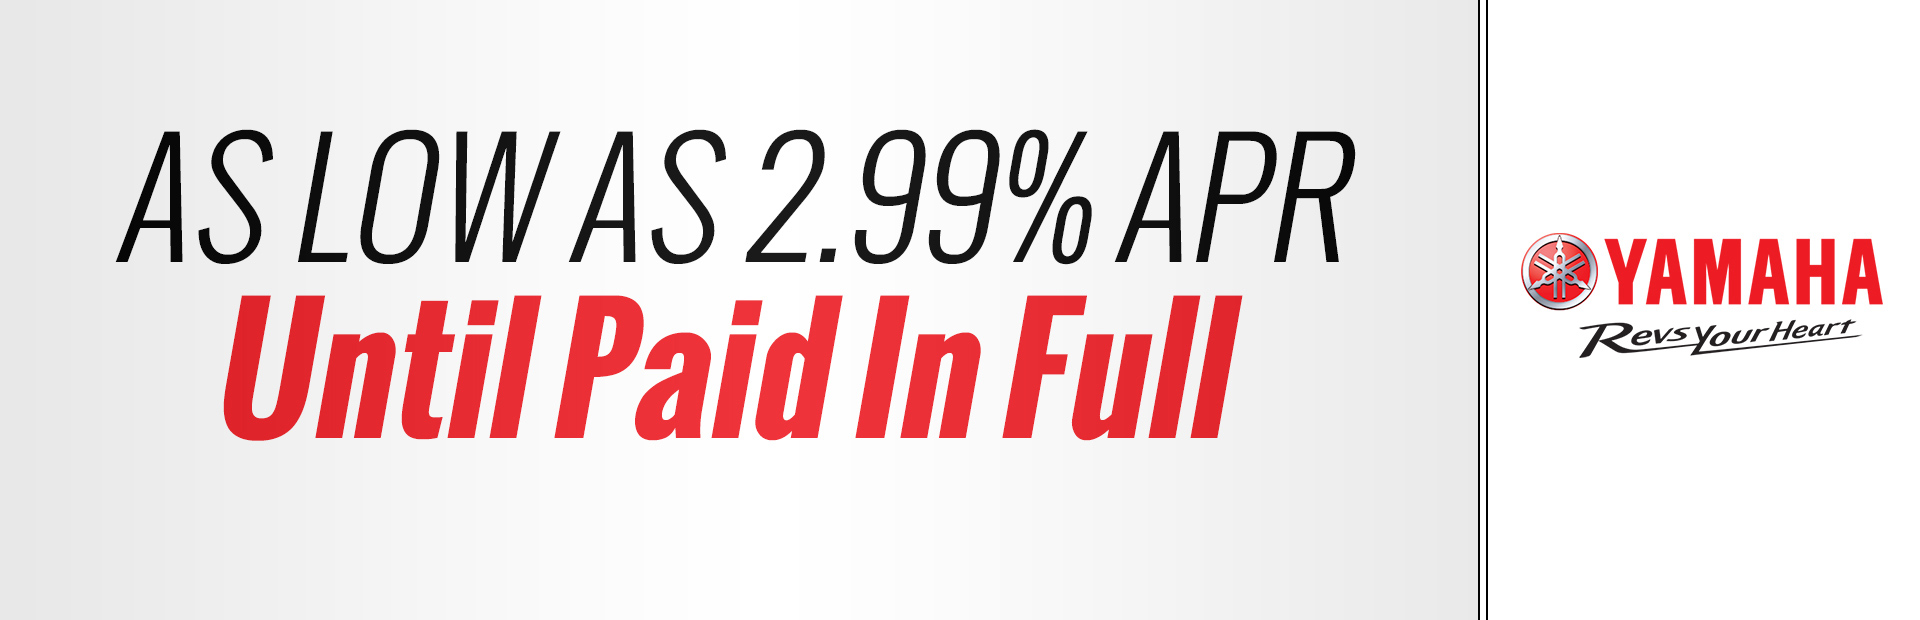 Yamaha: As Low As 2.99% APR Until Paid In Full